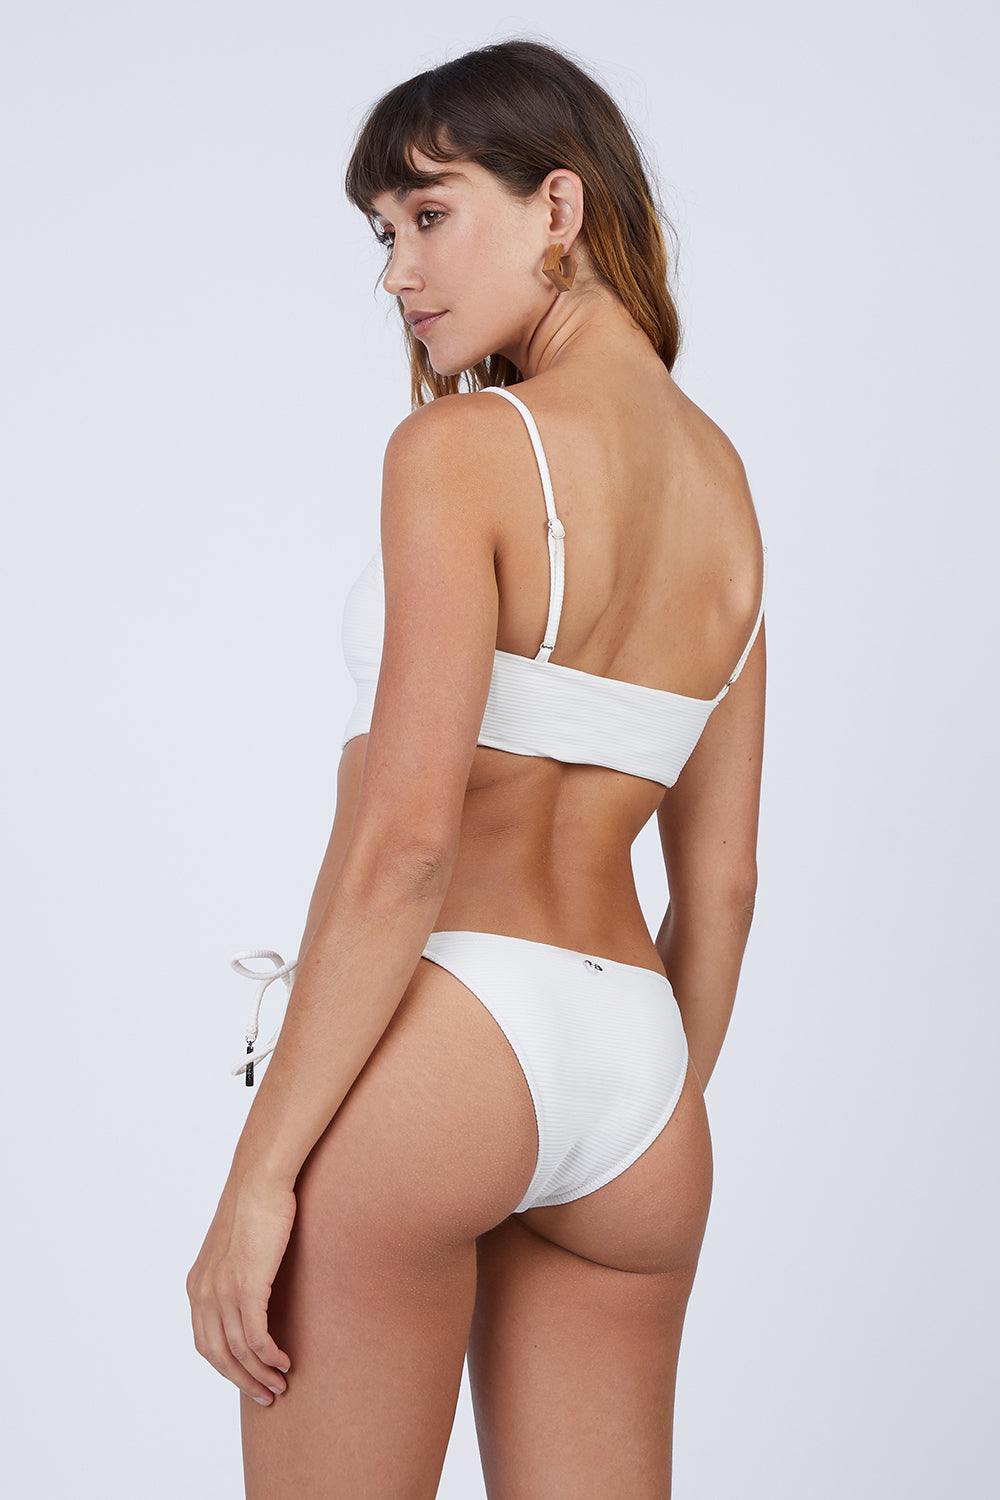 3a5ac5534a65 ... ROSA CHA Canel Front Tie Bikini Top - Ivory - undefined undefined